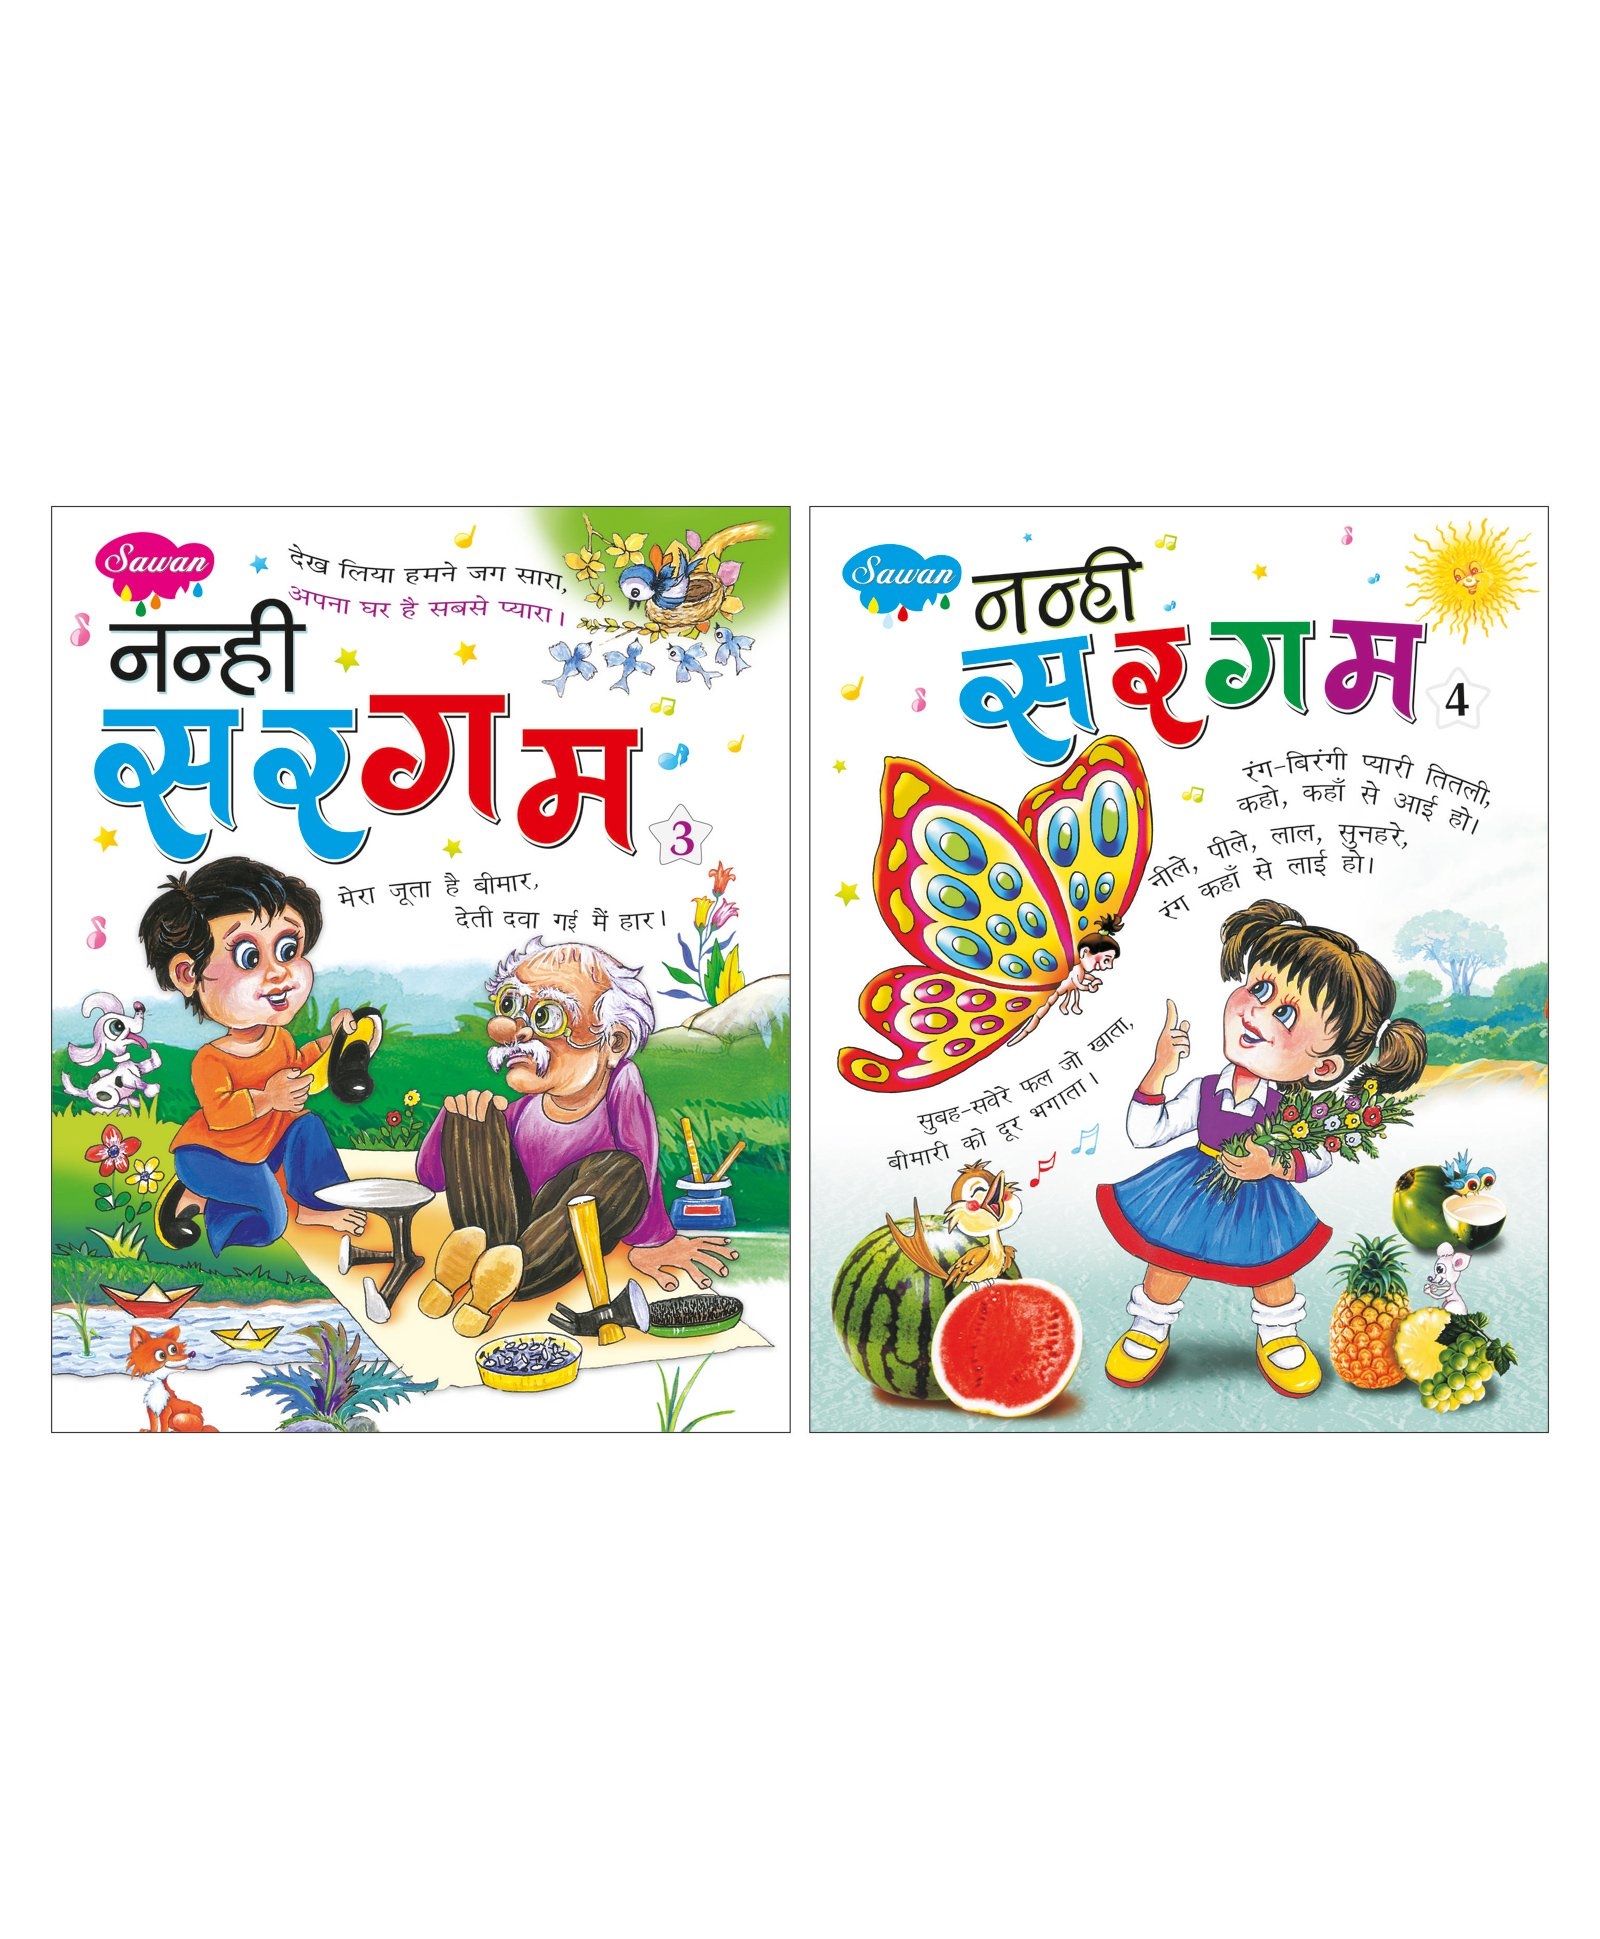 Sawan Nanhi Sargam 3 & 4 Set of 2 Hindi Online in India, Buy at Best Price  from Firstcry com - 2459416